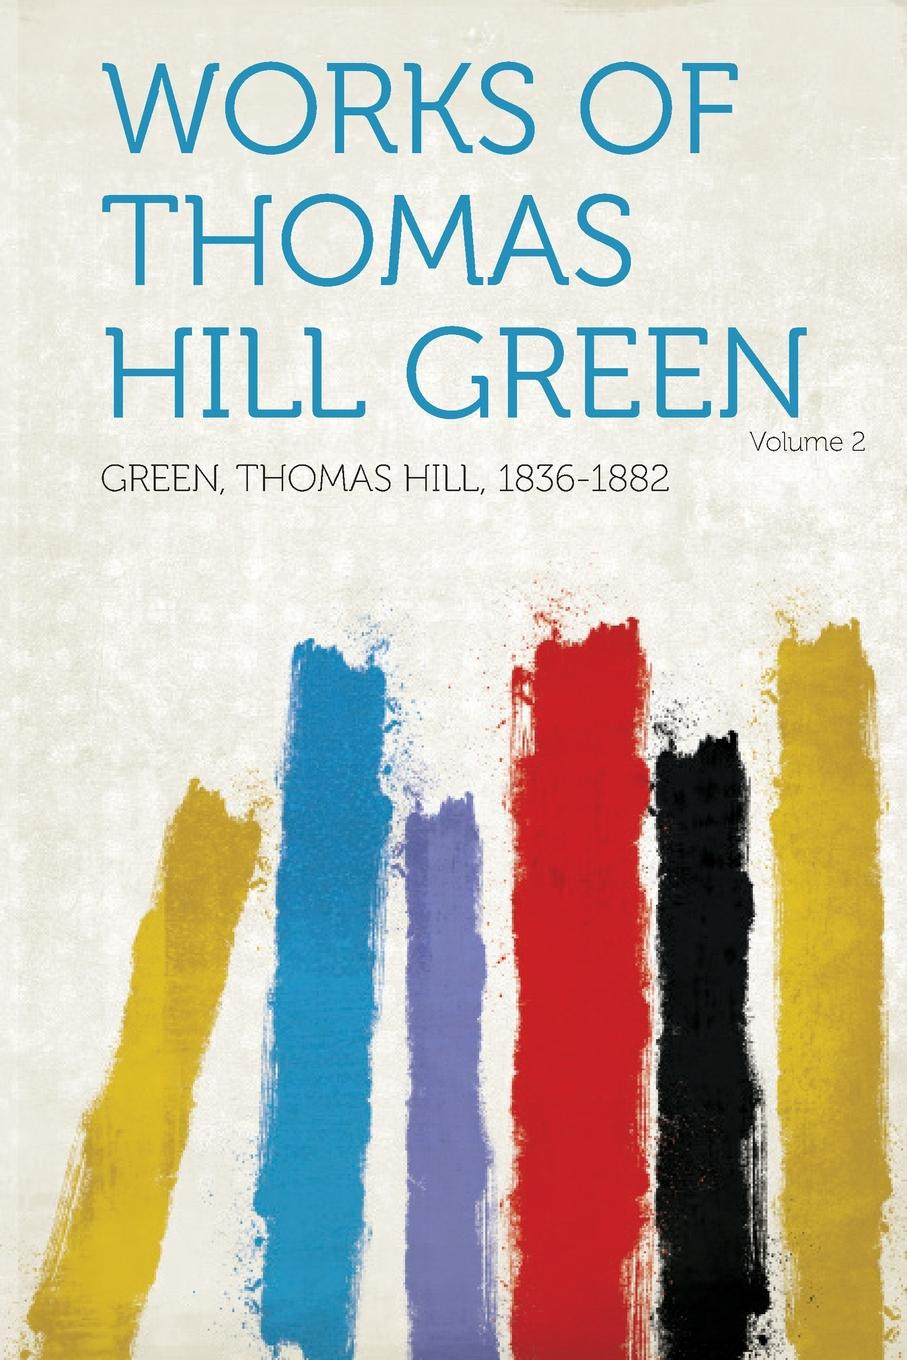 Green Thomas Hill 1836-1882 Works of Volume 2